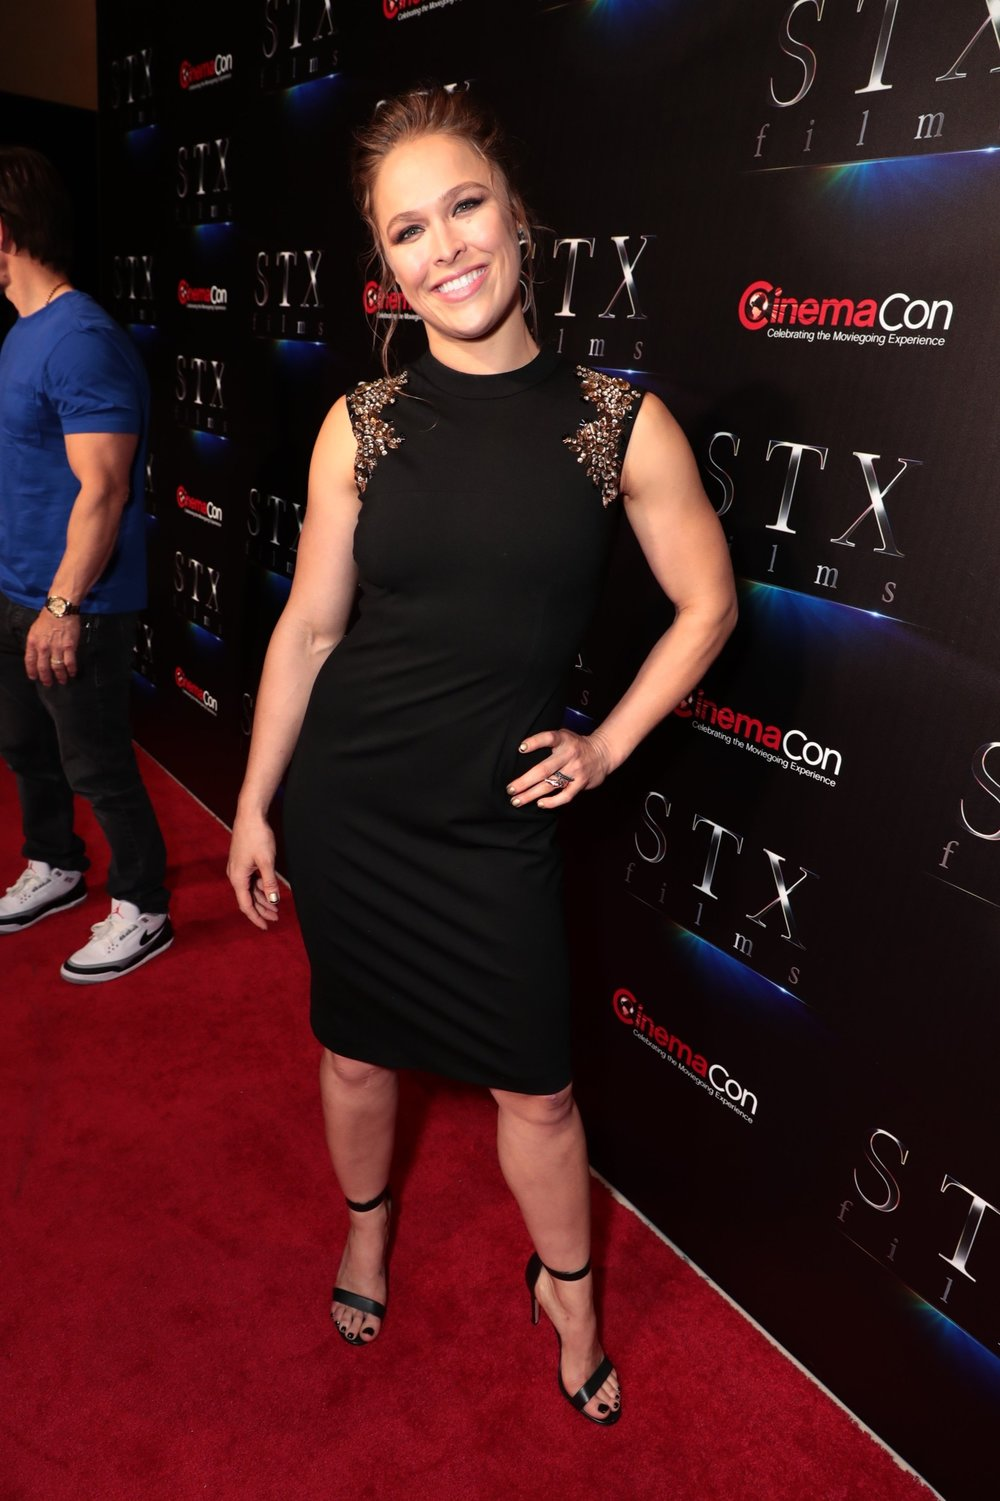 Ronda Rousey attends STXfilms' 2018 CinemaCon Presentation at The Colosseum of Caesars Palace, Las Vegas, NV Tuesday, April 24, 2018.